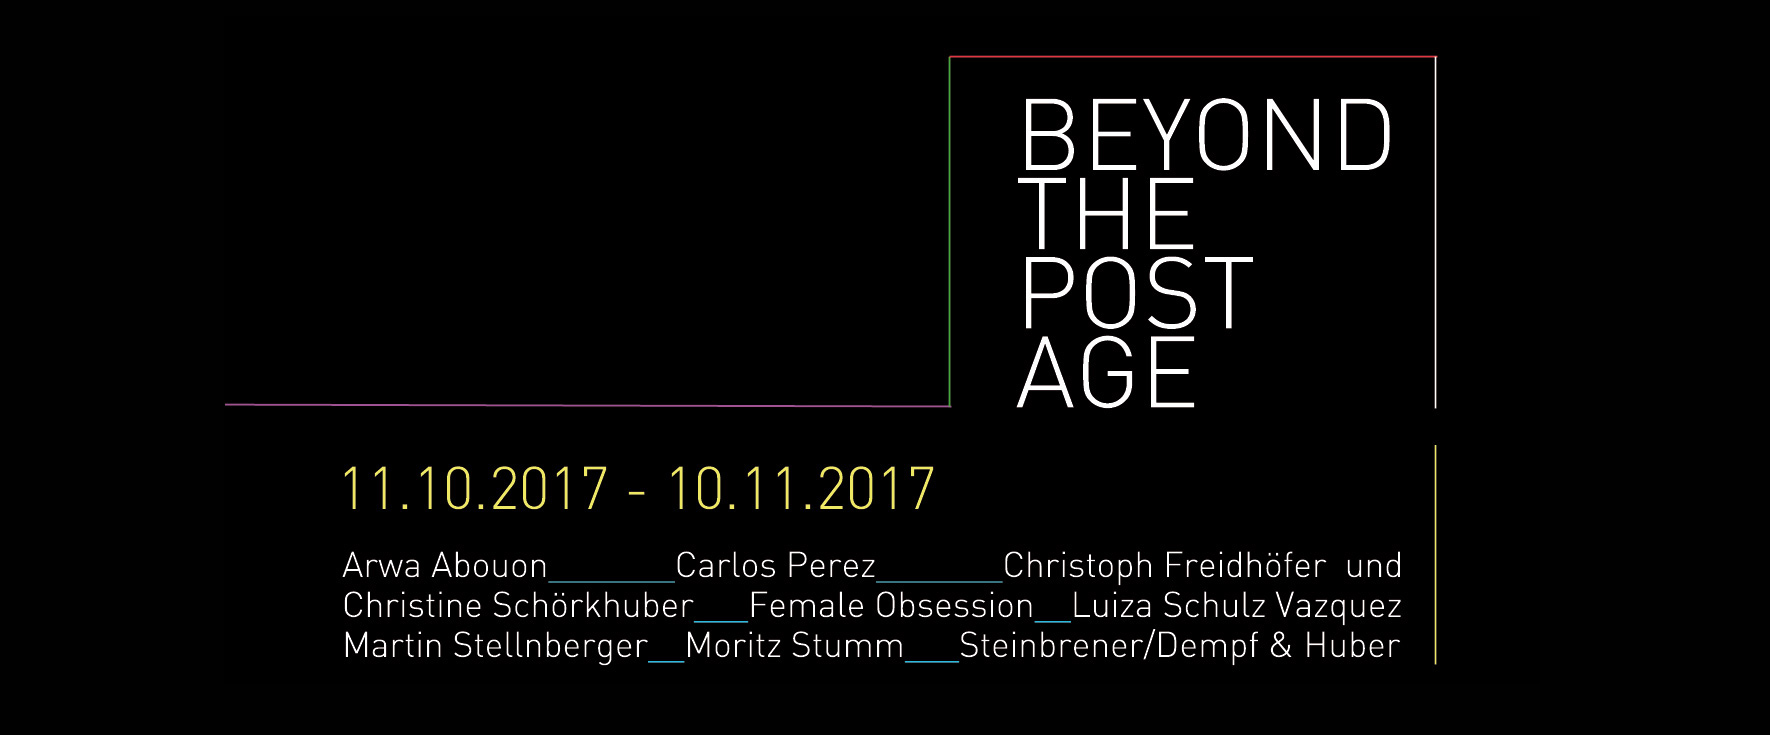 Beyond the Post Age